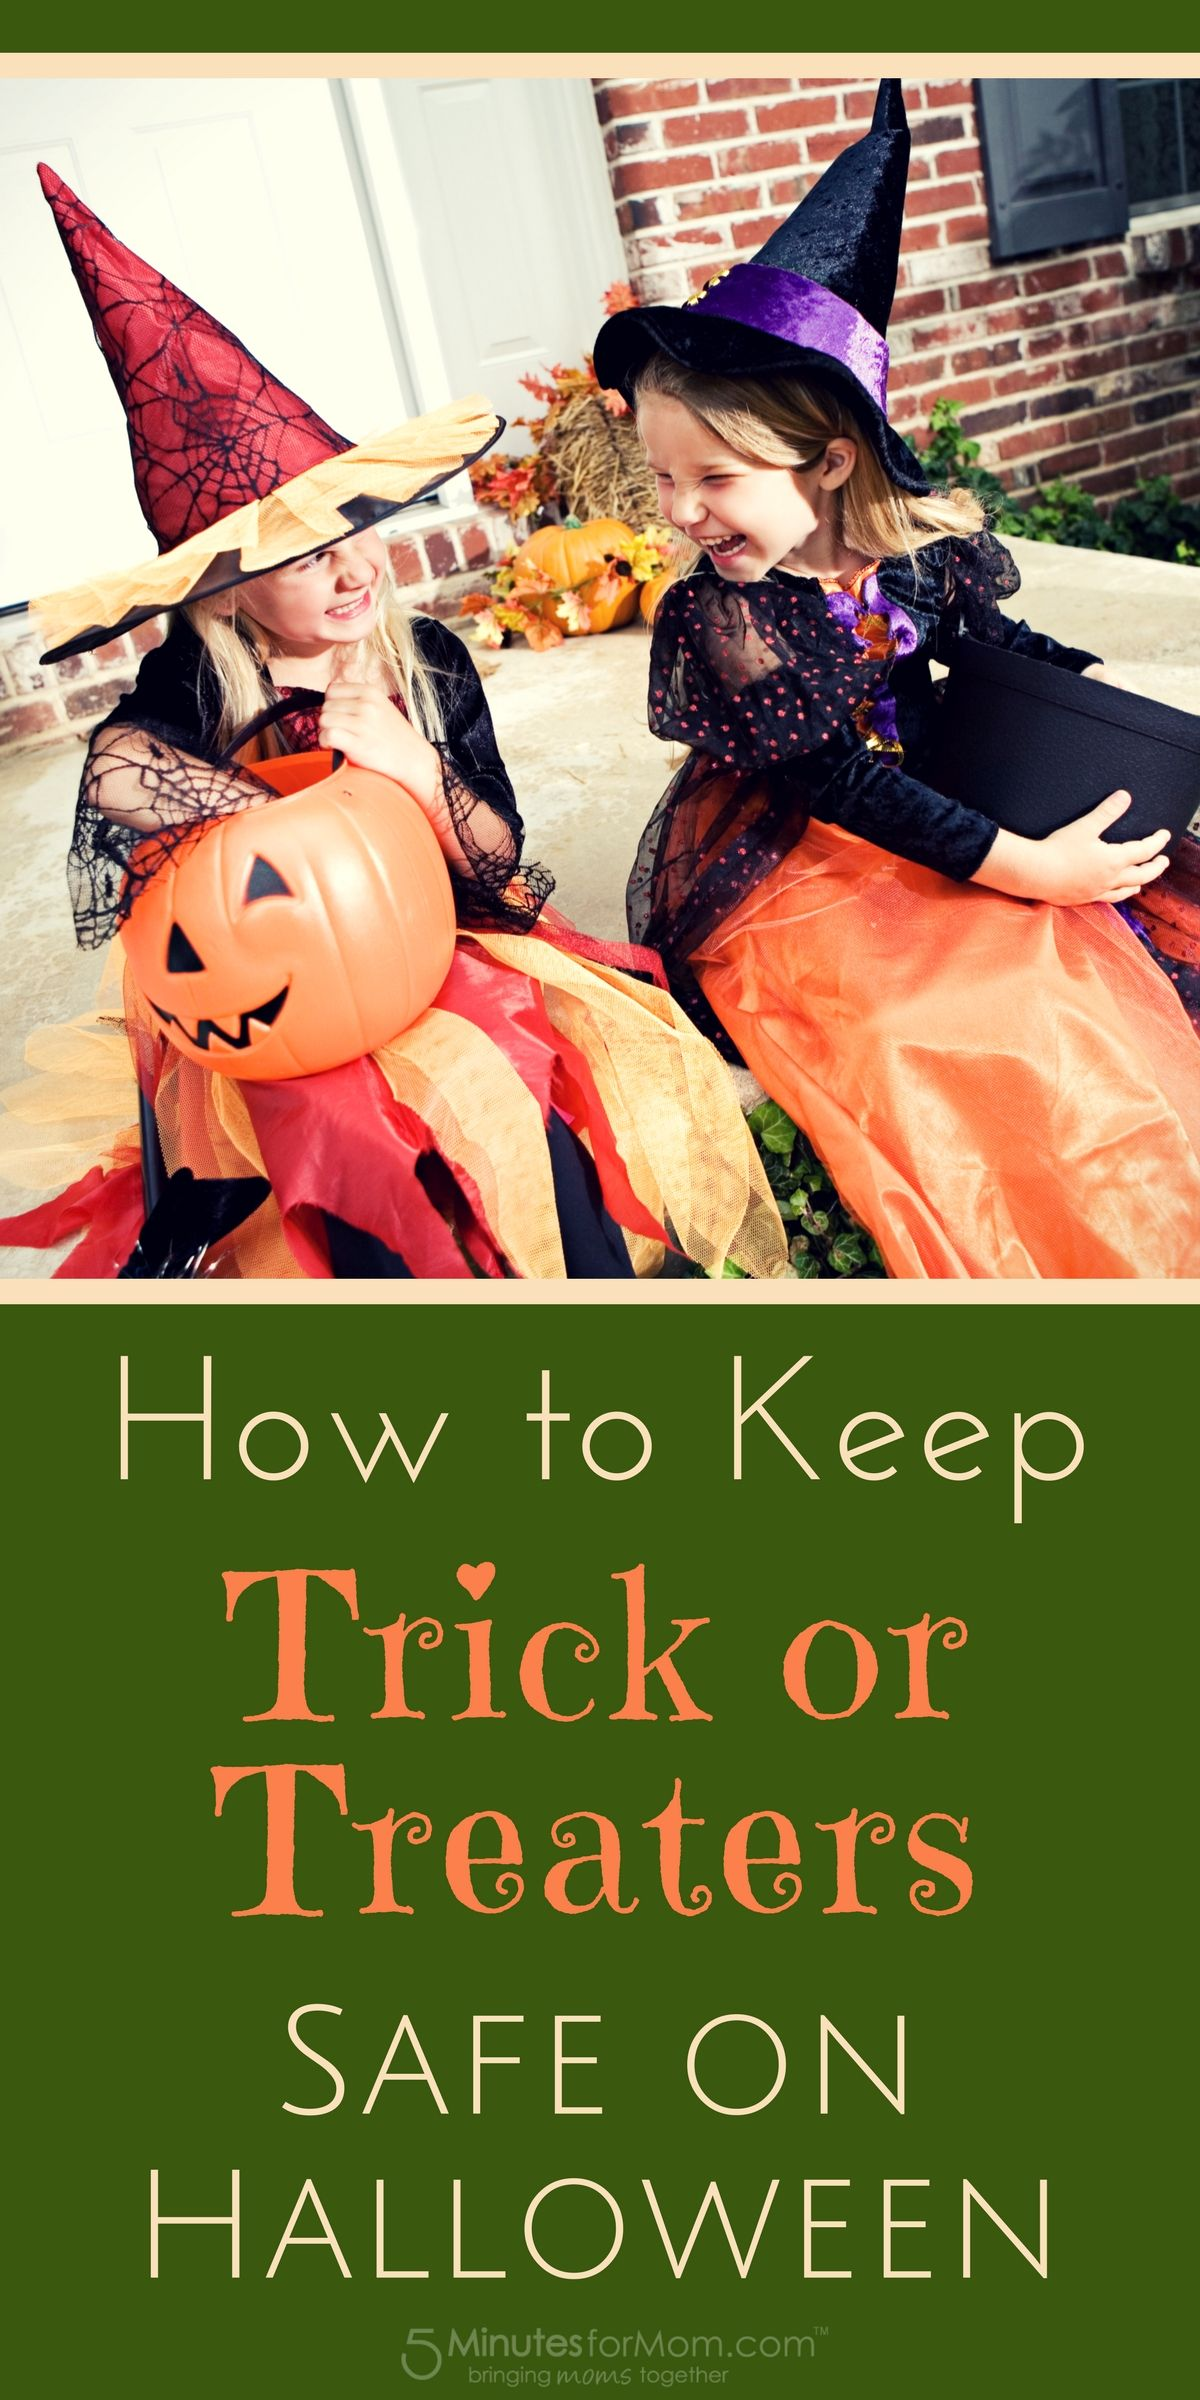 How to Keep Trick or Treaters Safe on Halloween